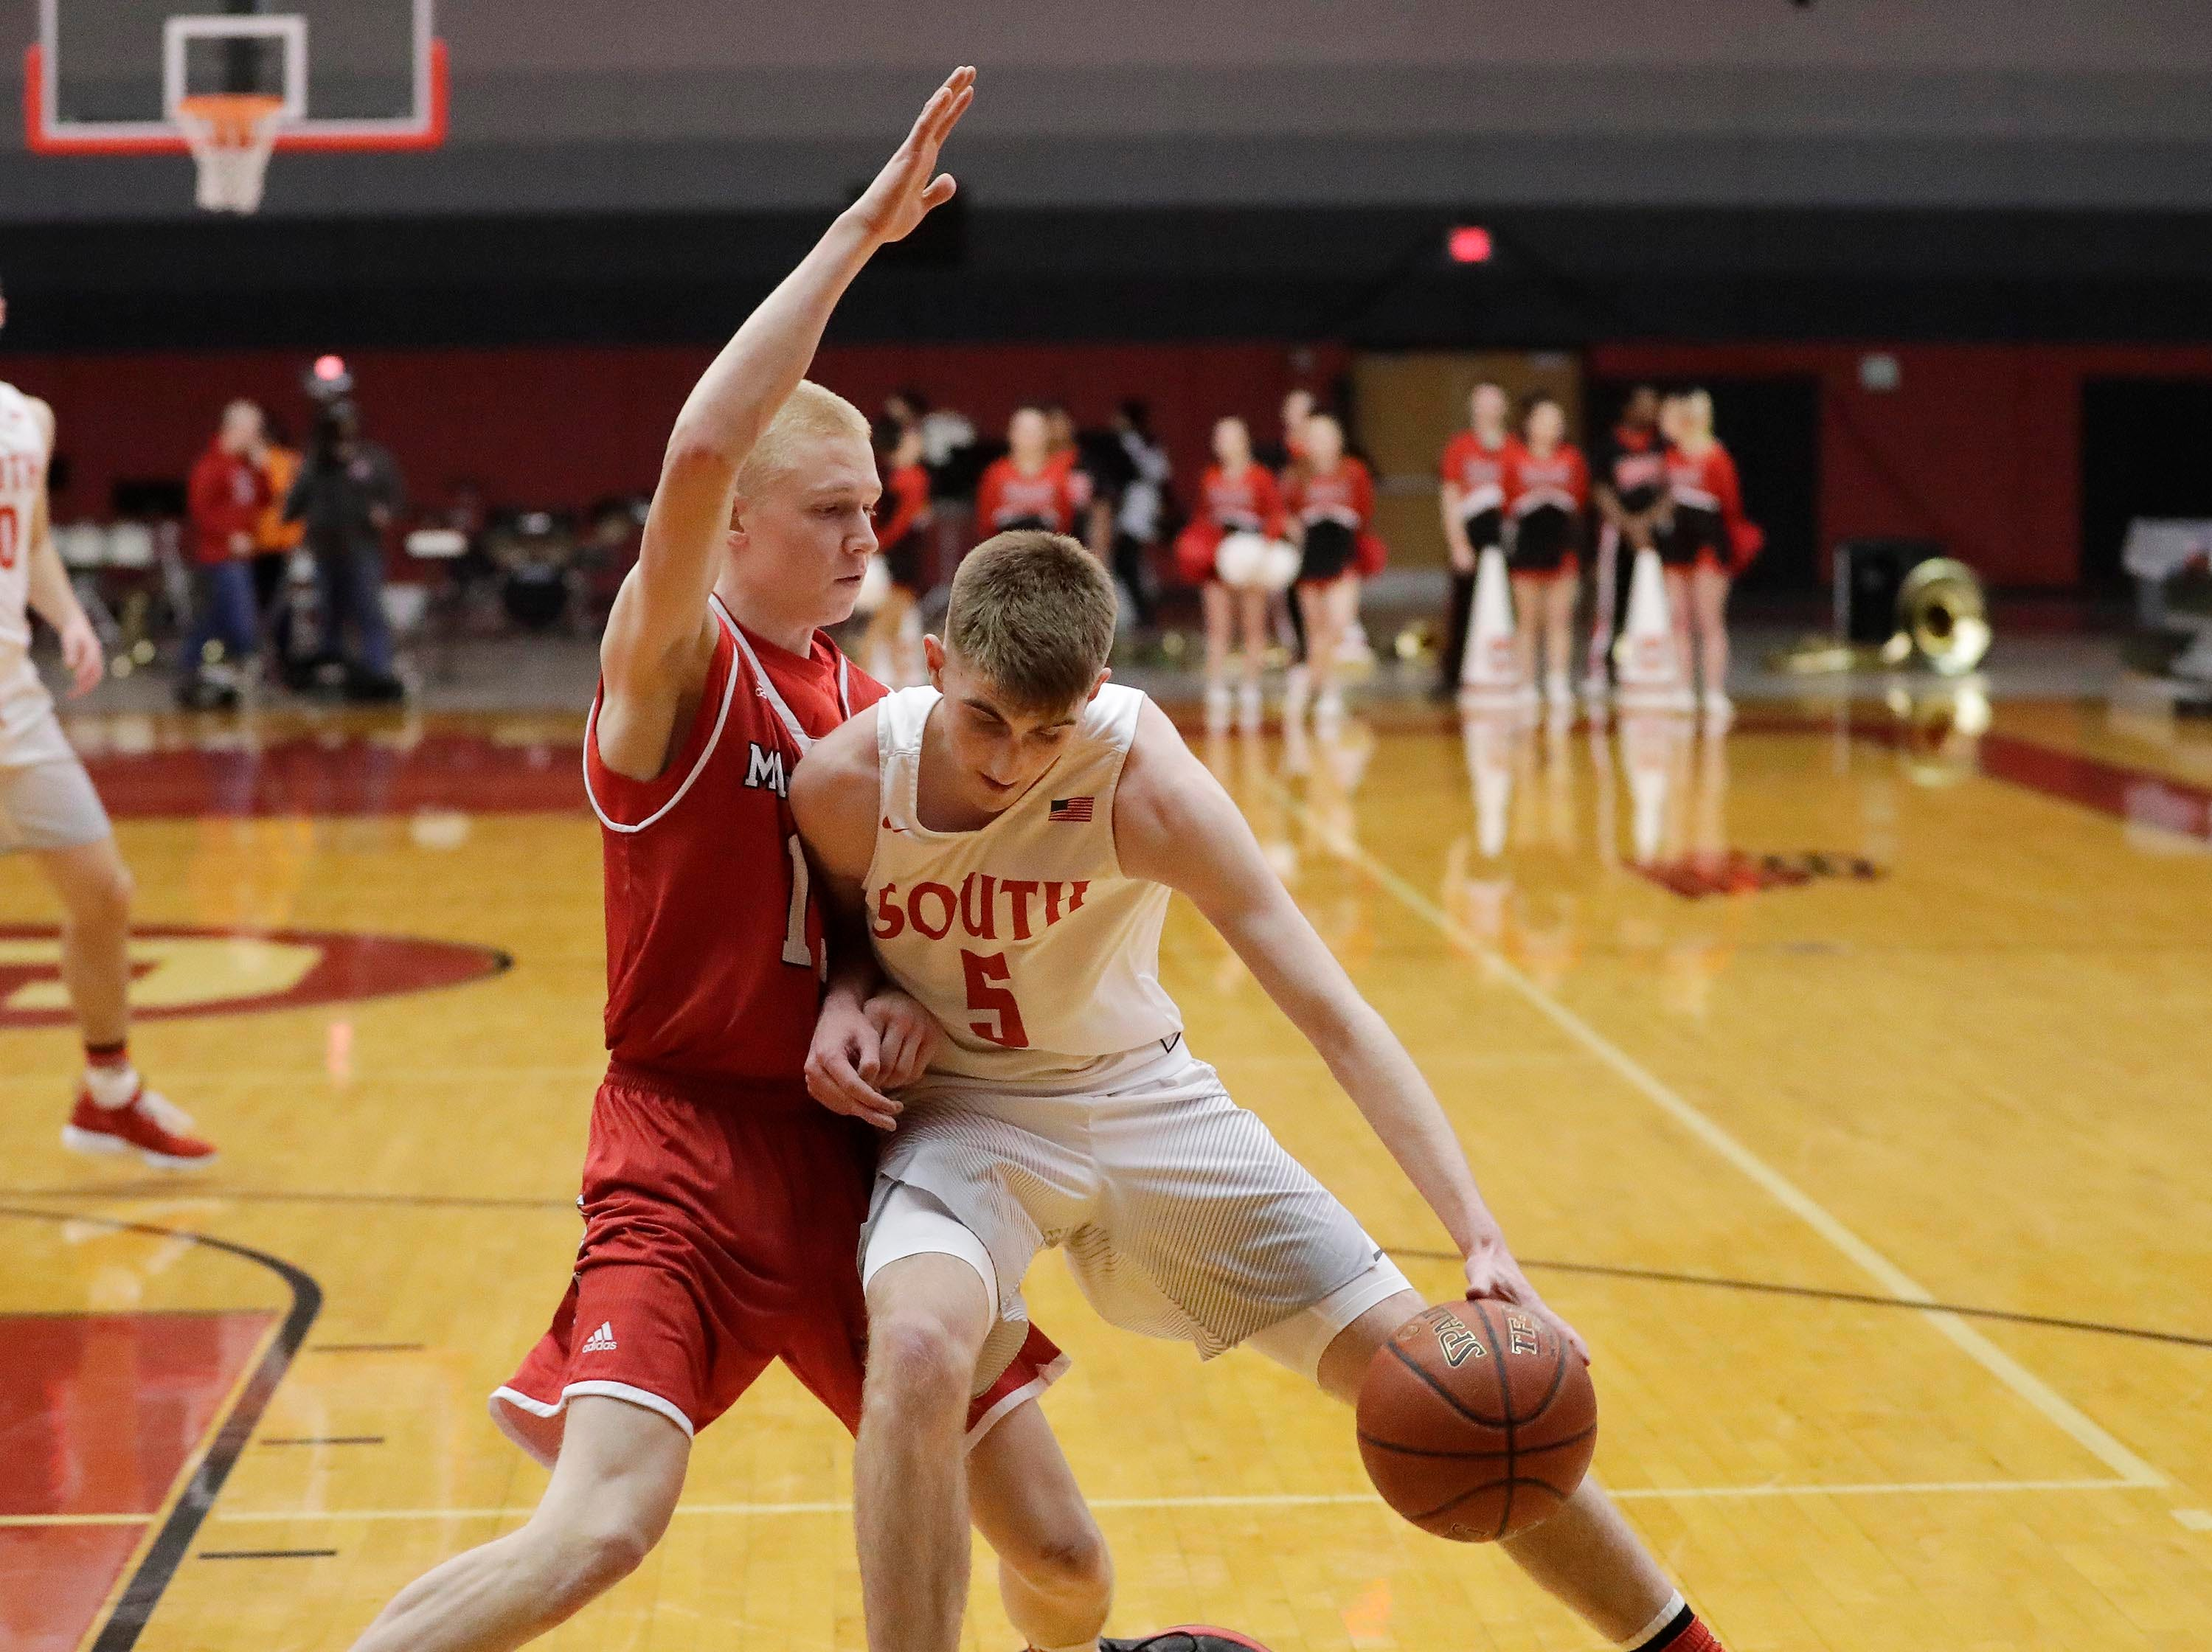 Sheboygan South's Jake Marver (5) driibbles the ball around Manitowoc Lincoln's Sam Jacobson (left), Tuesday, February 26, 2019, in Sheboygan, Wis.